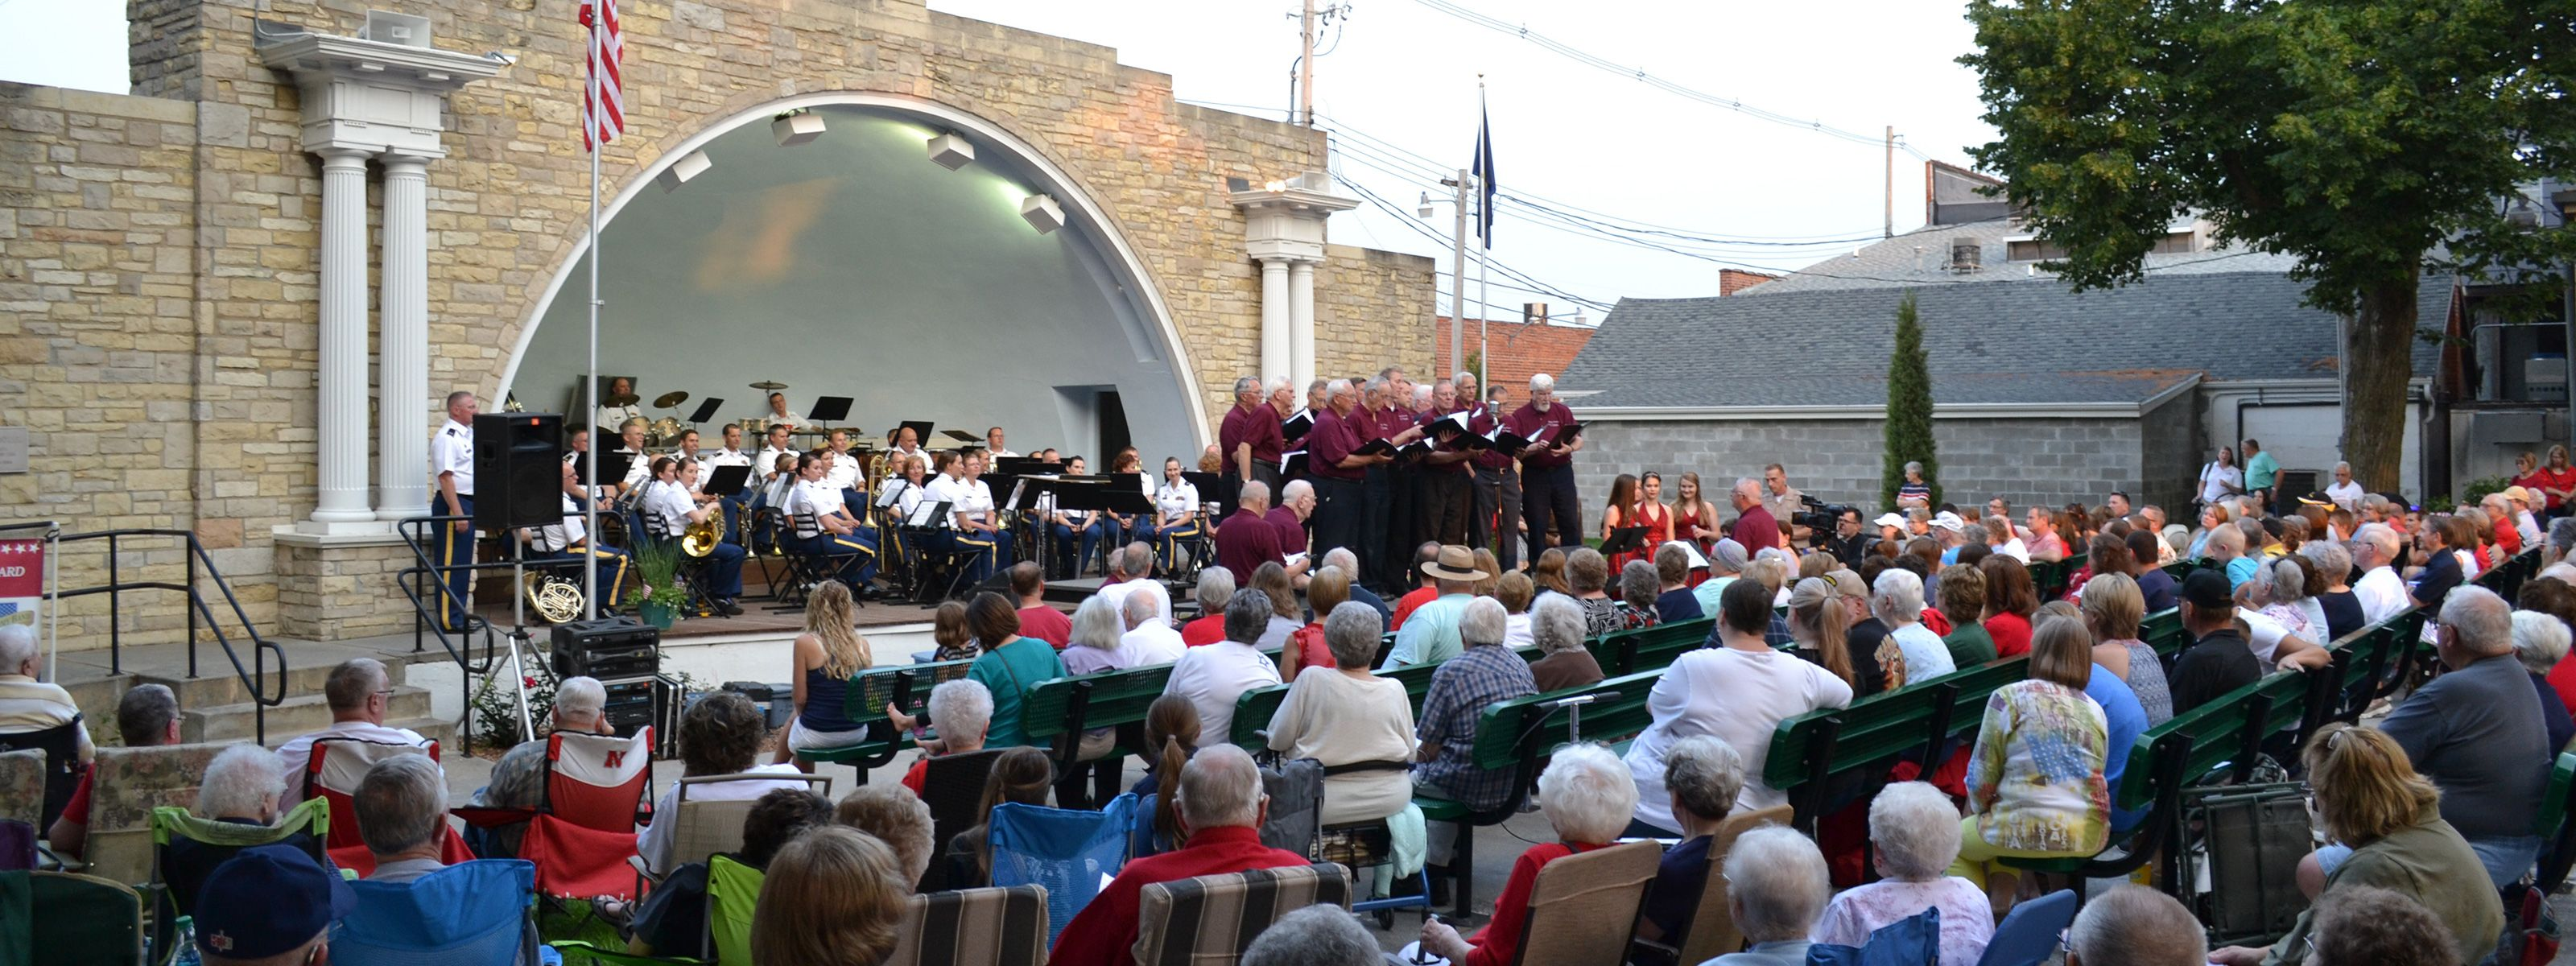 Performance at the Bandshell in Seward, Nebraska on July 4th